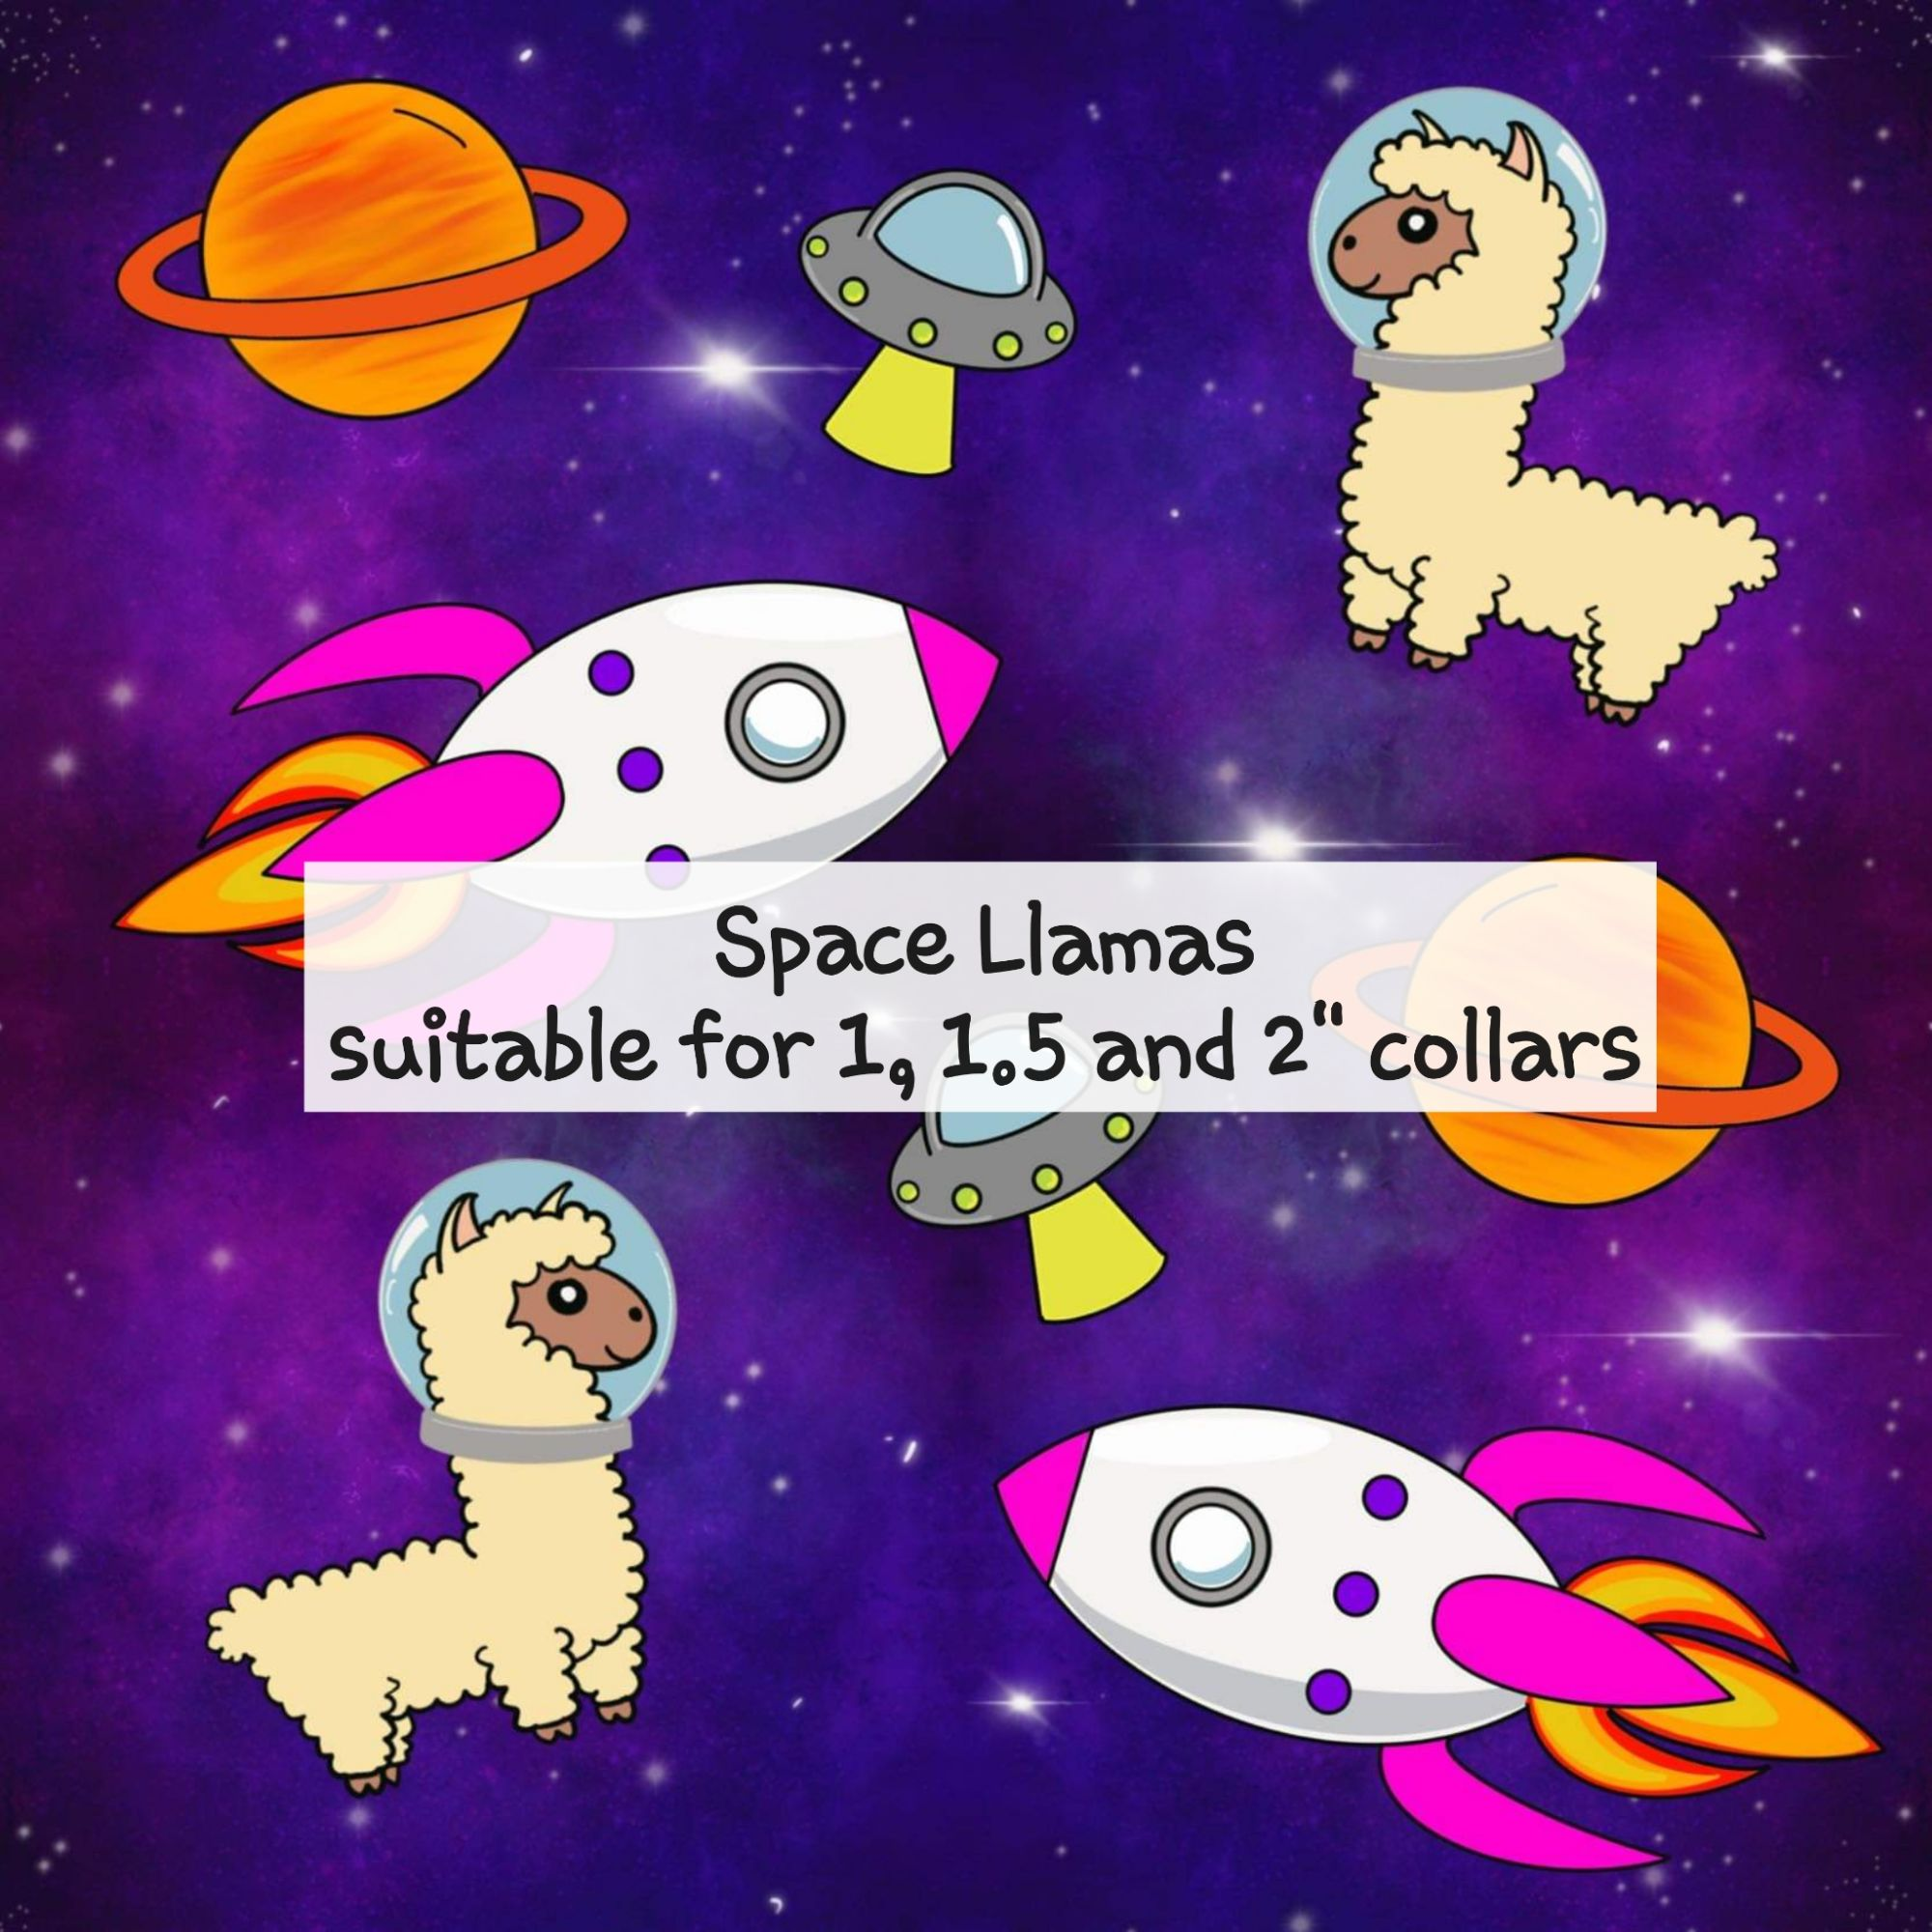 Space Llamas - suitable for 1, 1.5 and 2 inch